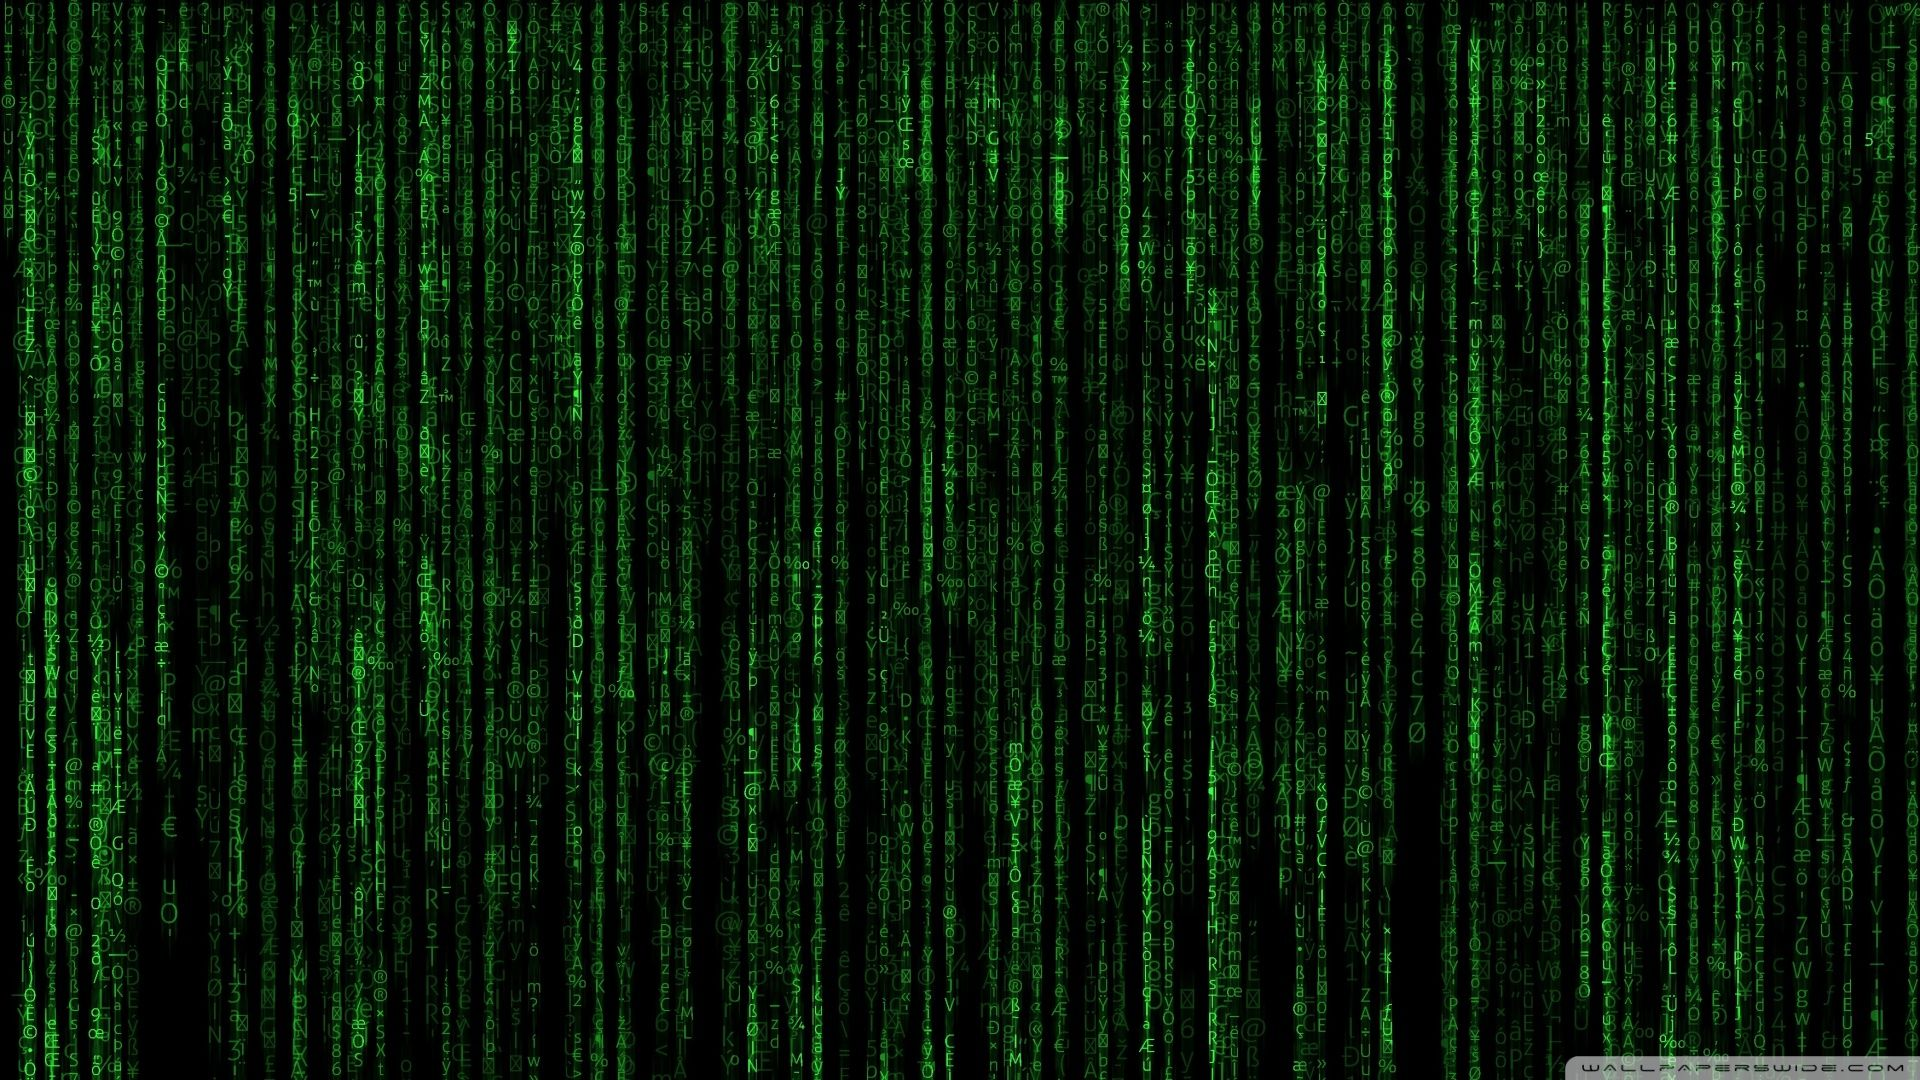 Matrix Gif Wallpapers Group | HD Wallpapers in 2019 | Data science